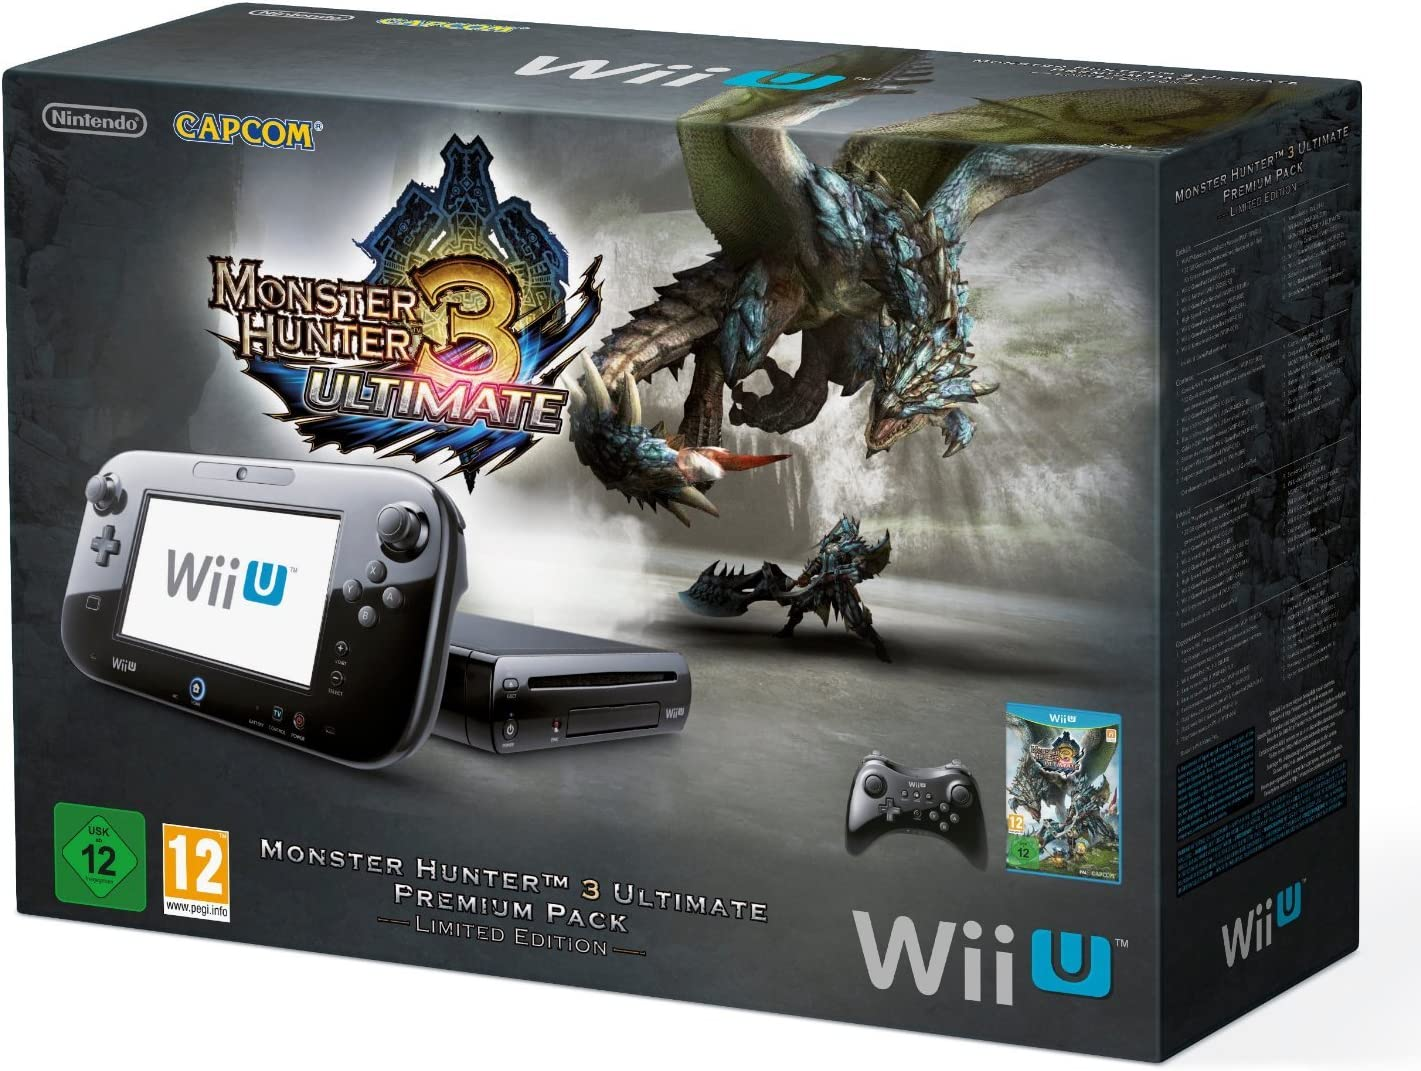 Nintendo Monster Hunter 3 - juegos de PC (Wii U, Wii U, IBM PowerPC, AMD Radeon, SD, SDHC, 32 GB, 32 GB) Negro: Amazon.es: Videojuegos